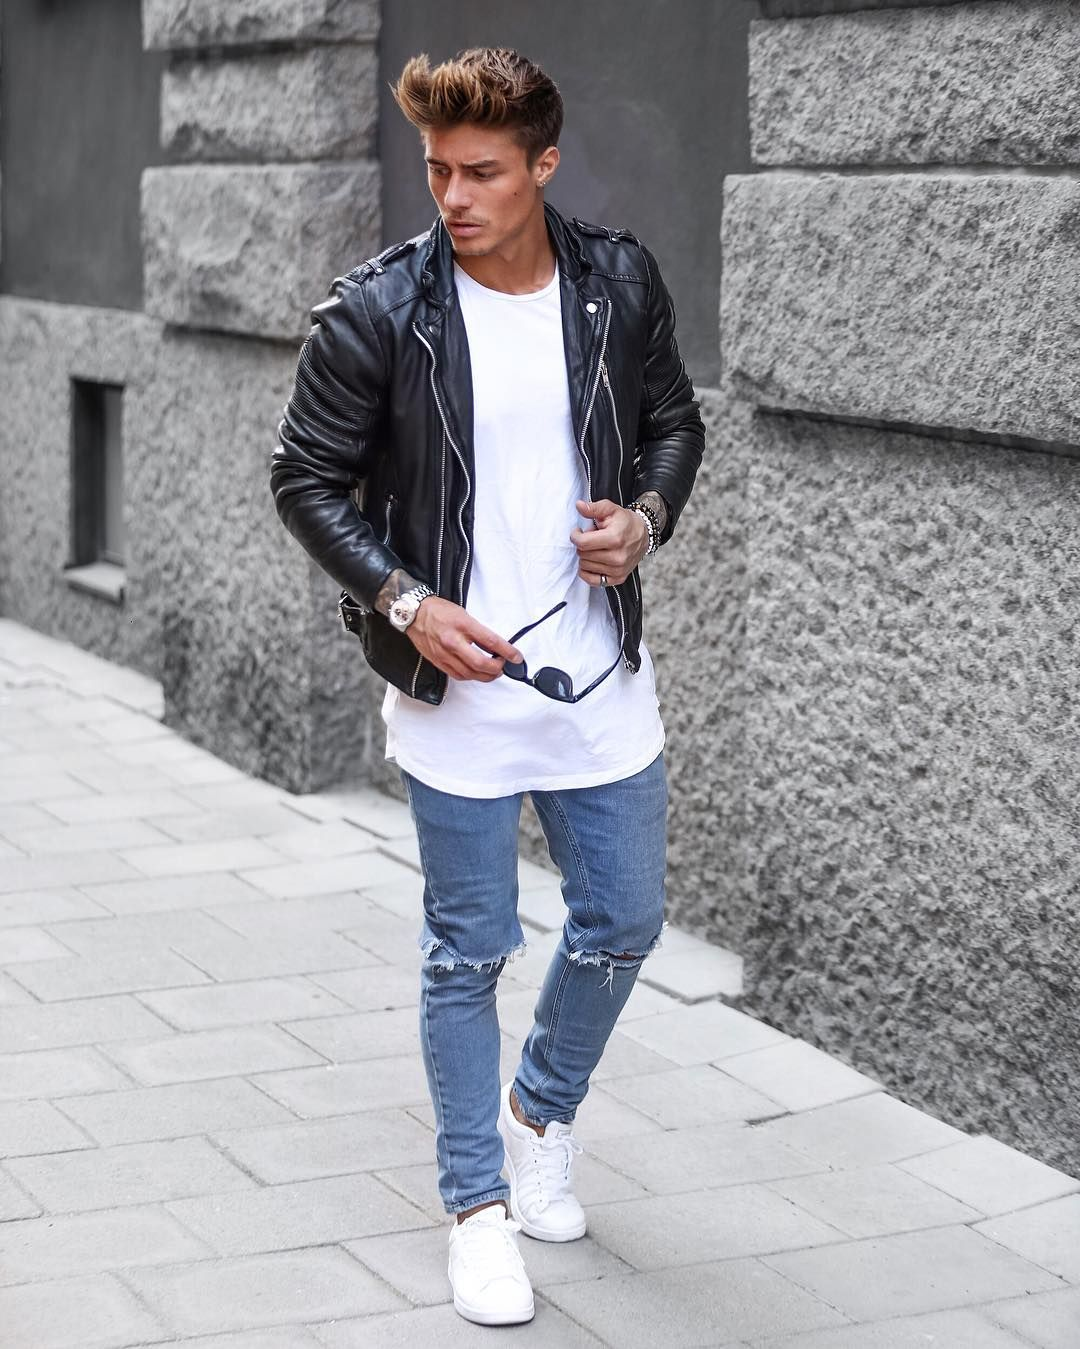 Instagram Photo By J O H N N Y E D L I N D May 27 2016 At 2 13pm Utc Ripped Jeans Men Johnny Edlind Mens Outfits [ 1349 x 1080 Pixel ]